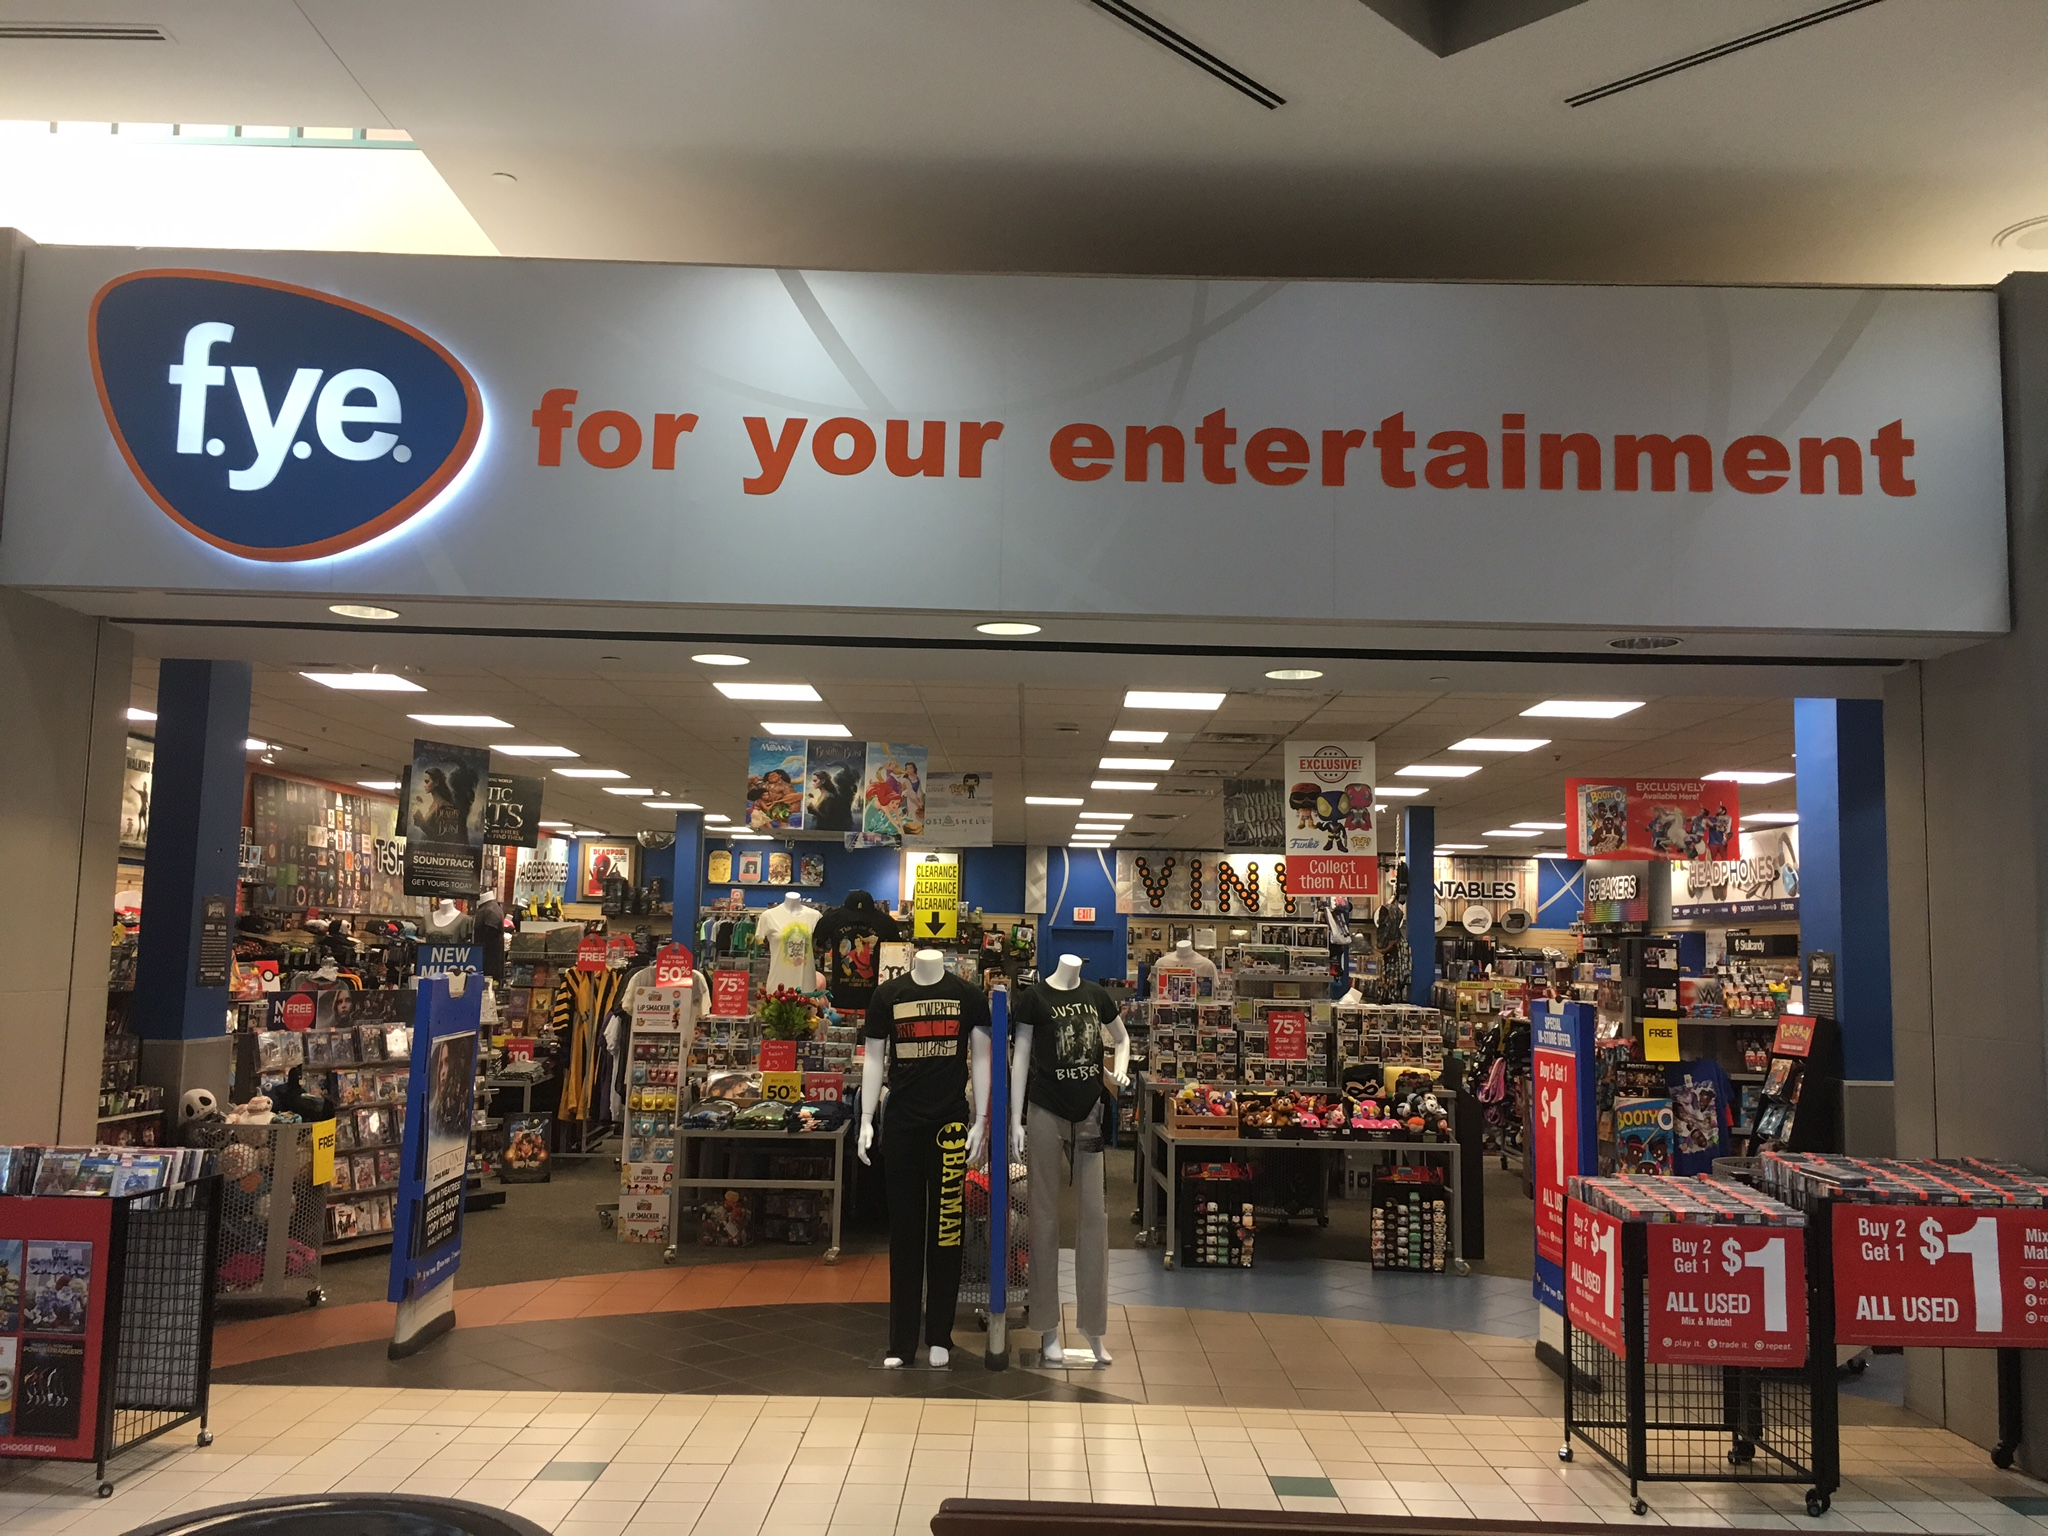 FYE Retail Stores Lost $50.7 Million in Fiscal Year